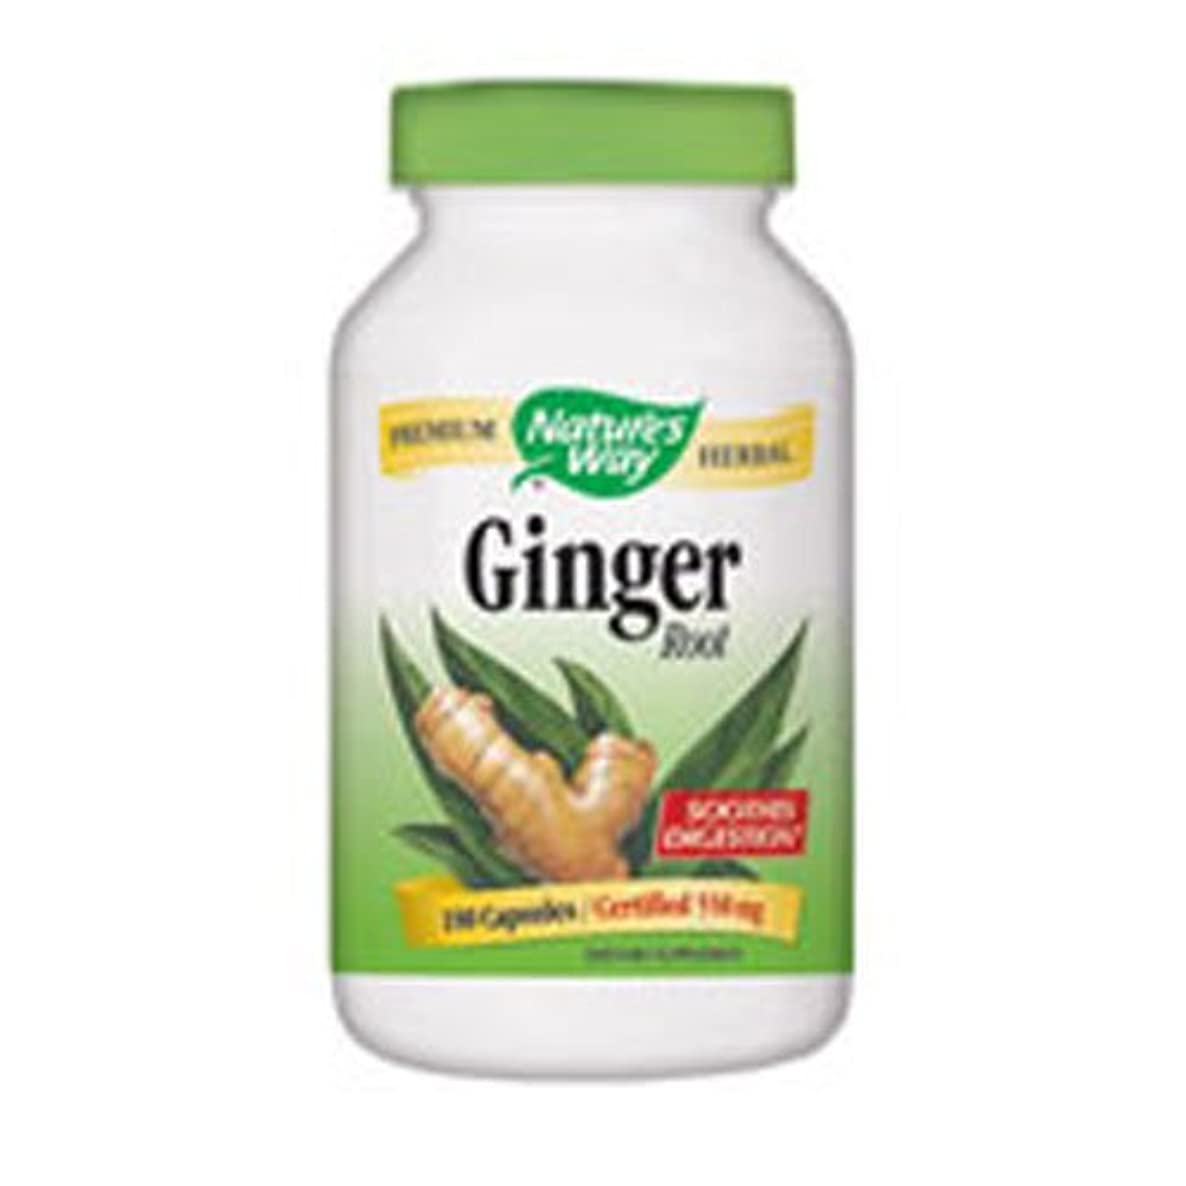 Natures Way Ginger Root